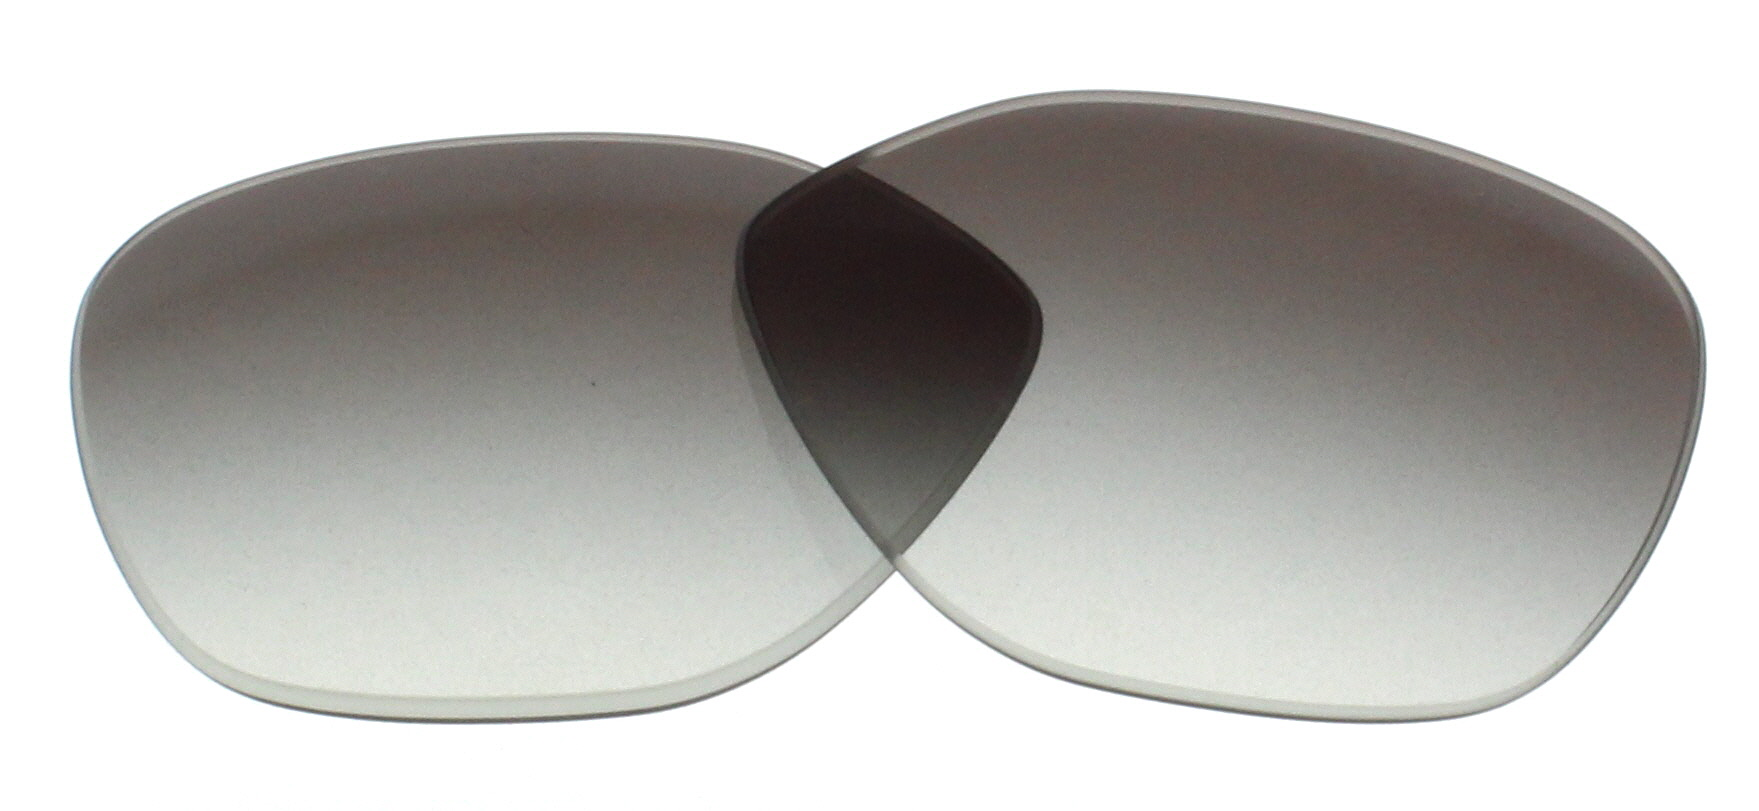 6d1ea4e8c068 Image is loading PRADA-Replacement-Lenses-PR-53SS-Grey-Gradient-52mm